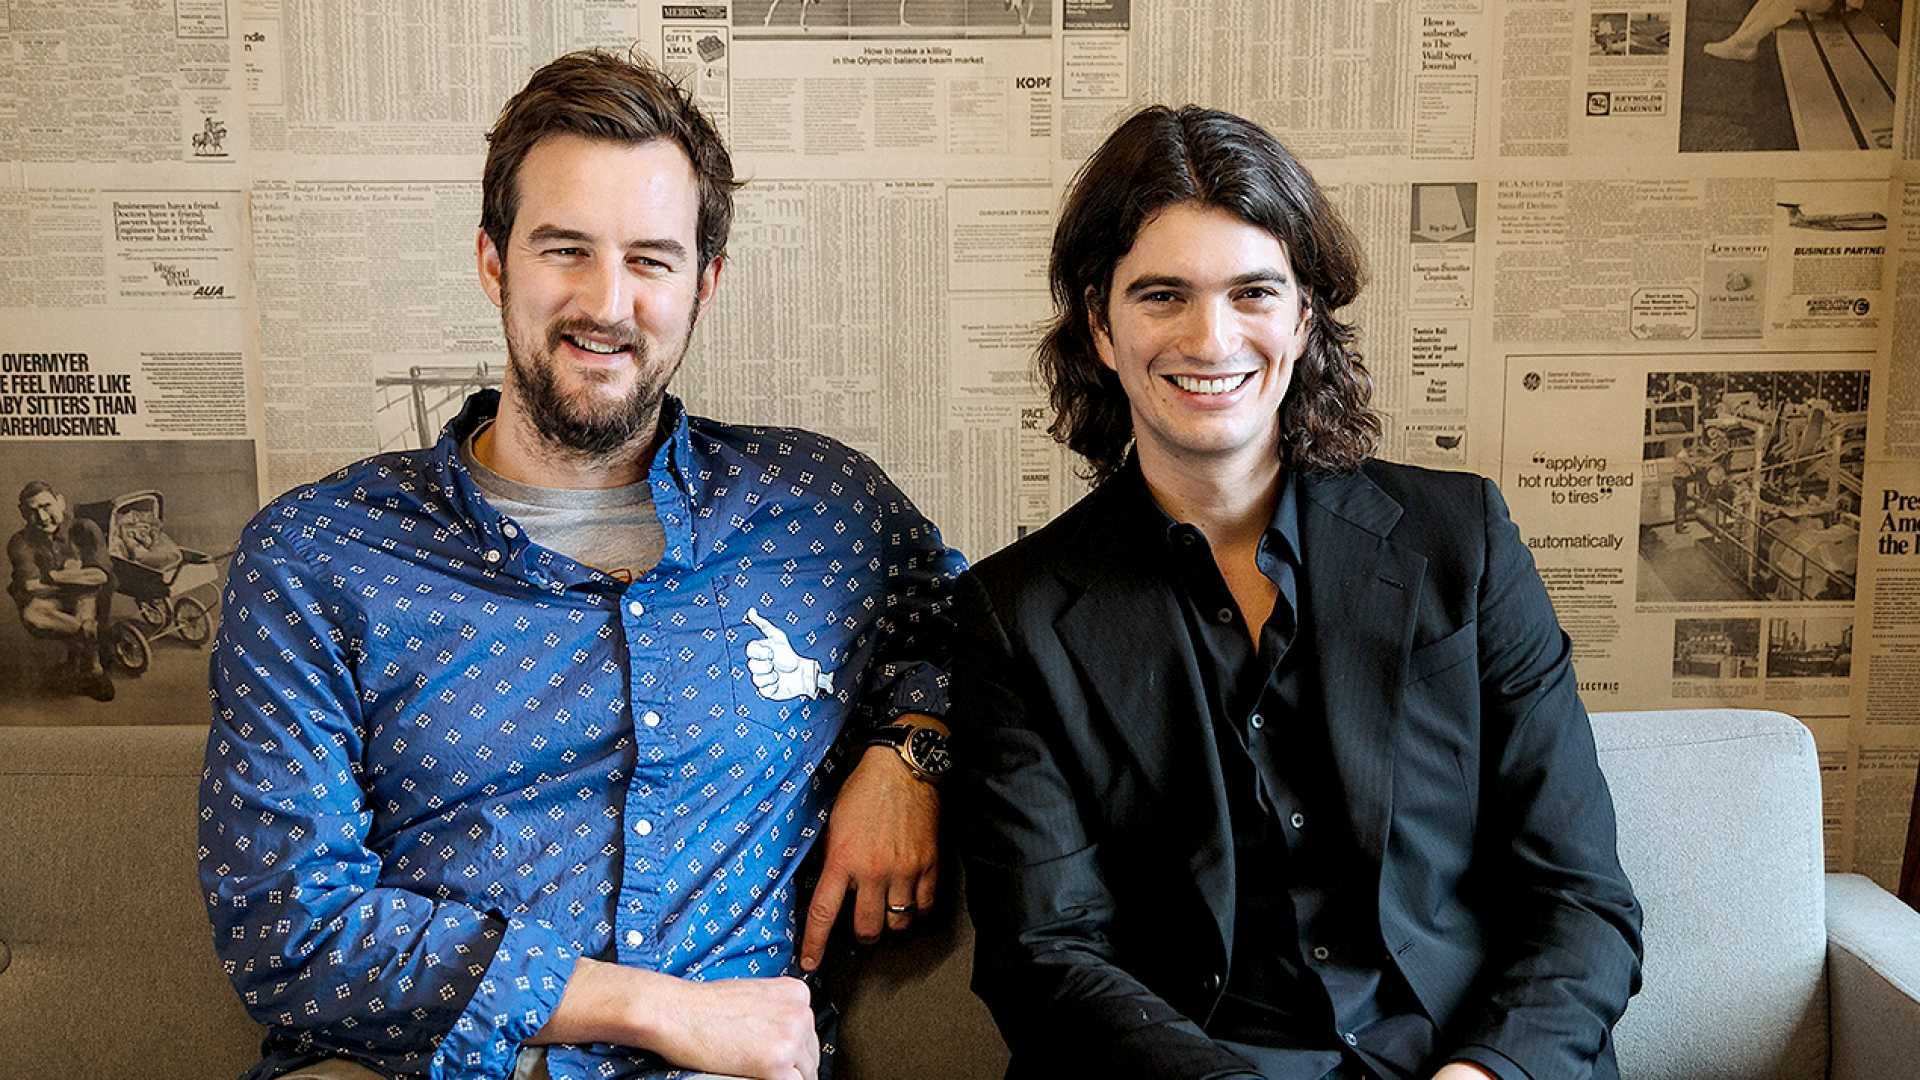 WeWork co-founders Miguel McKelvey (L) and Adam Neumann (R).